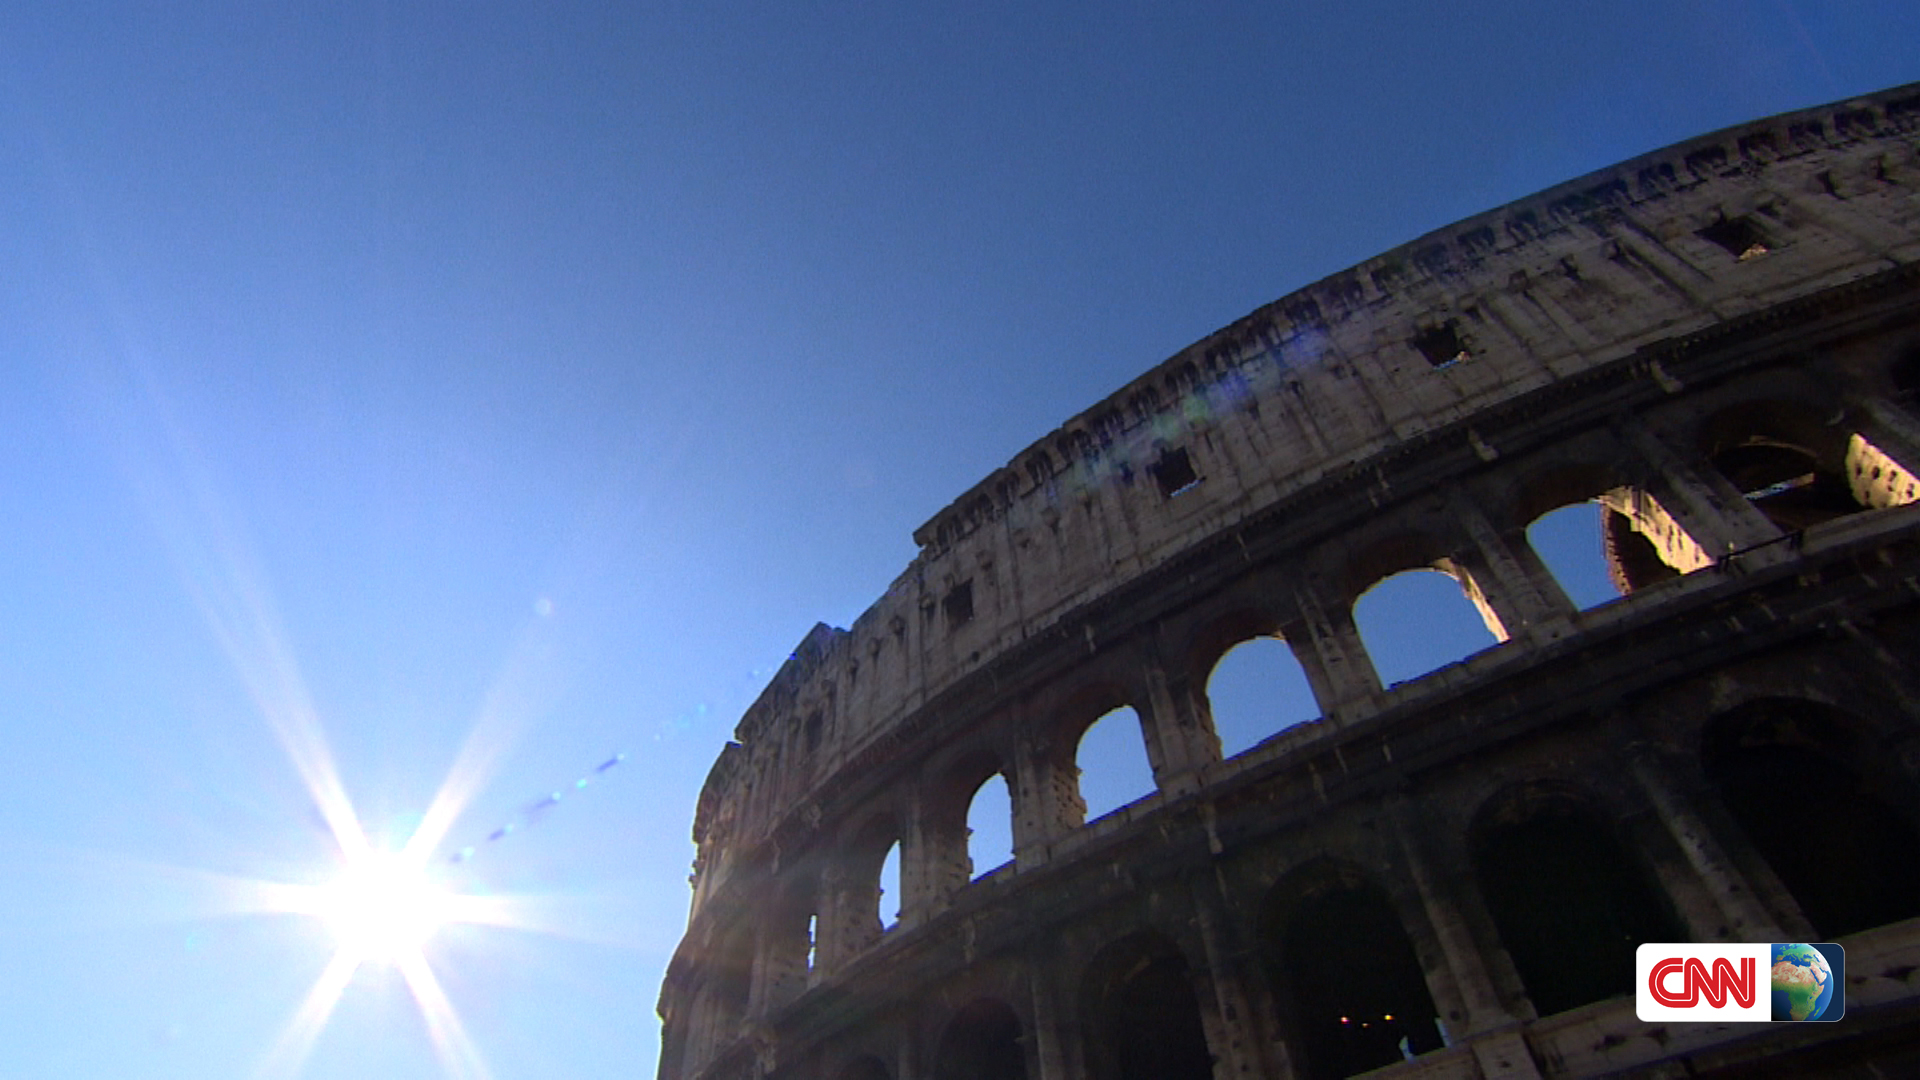 CNNGo explores the sights, tastes and sounds of Italy's Capital city